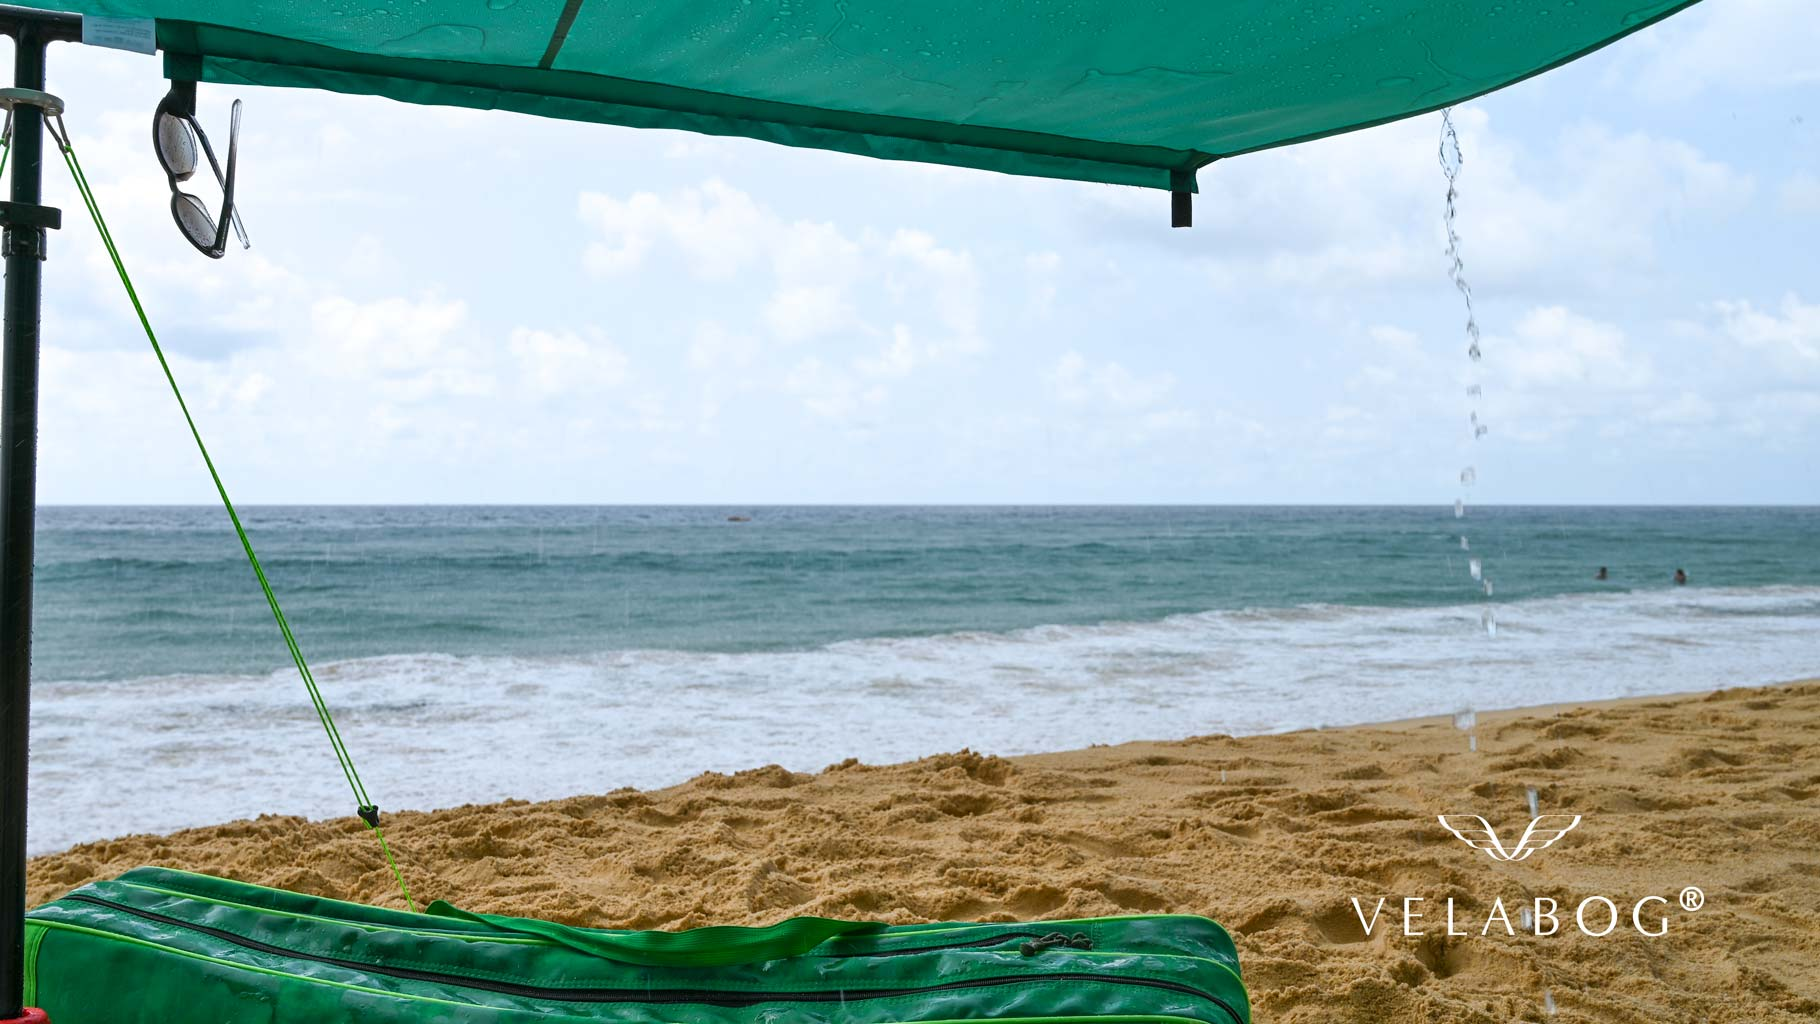 Velabog sun sails «Breeze» on the beach is also a shelter against a short tropical rain. Sun sail, beach umbrella and beach tent in one. You have everything you need to really enjoy the beach without worry.